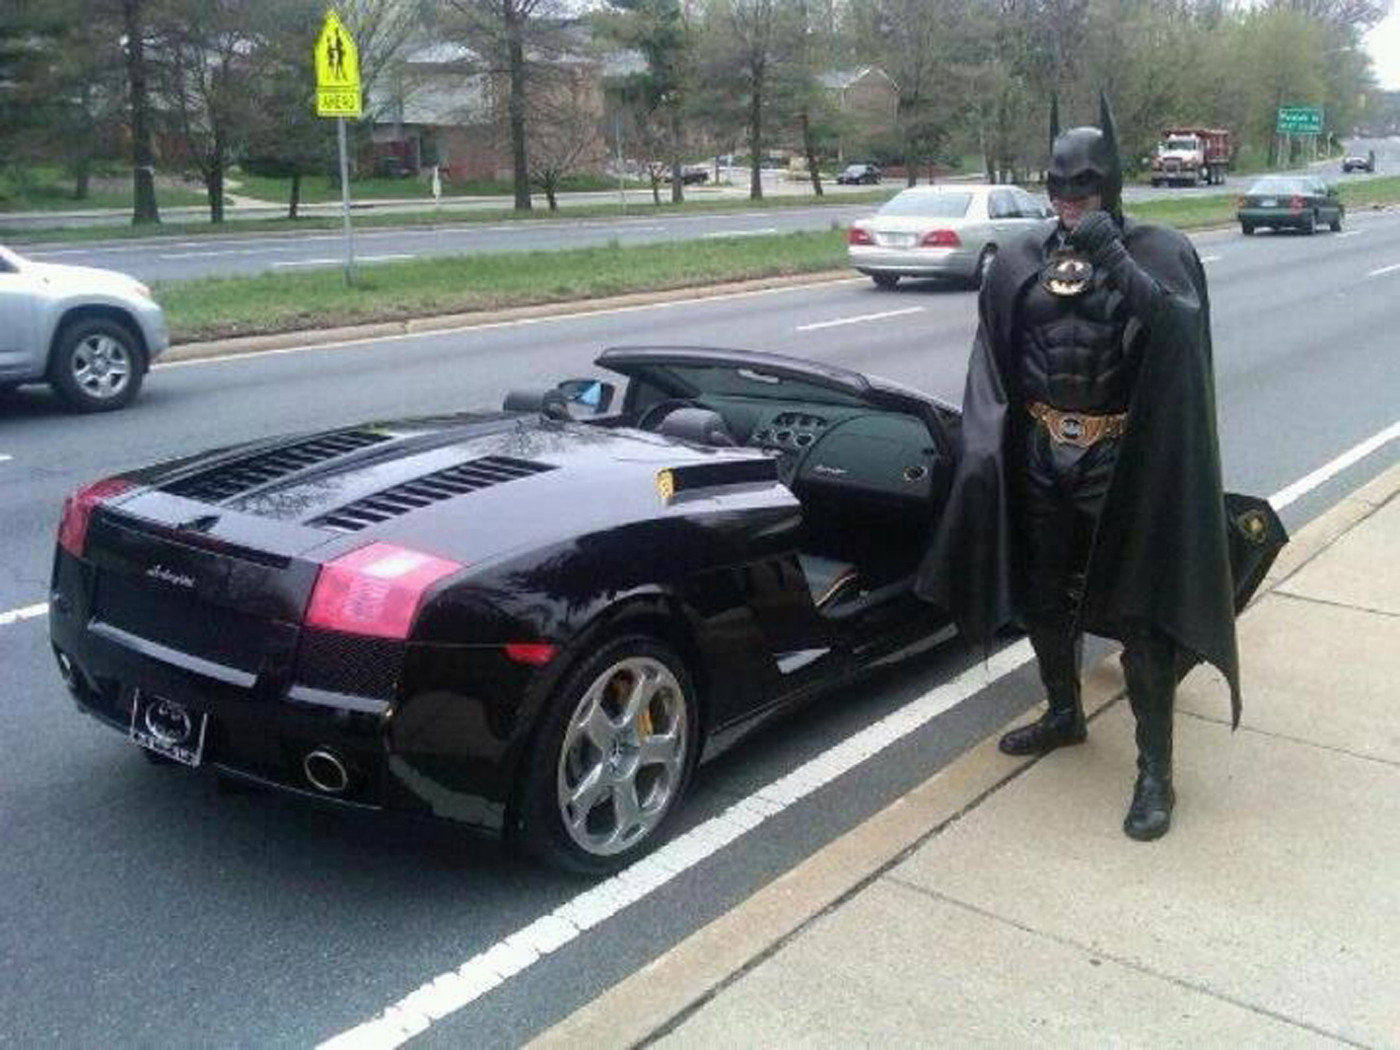 Police stop 'Batman' for not having license tags on his 'Batmobile'